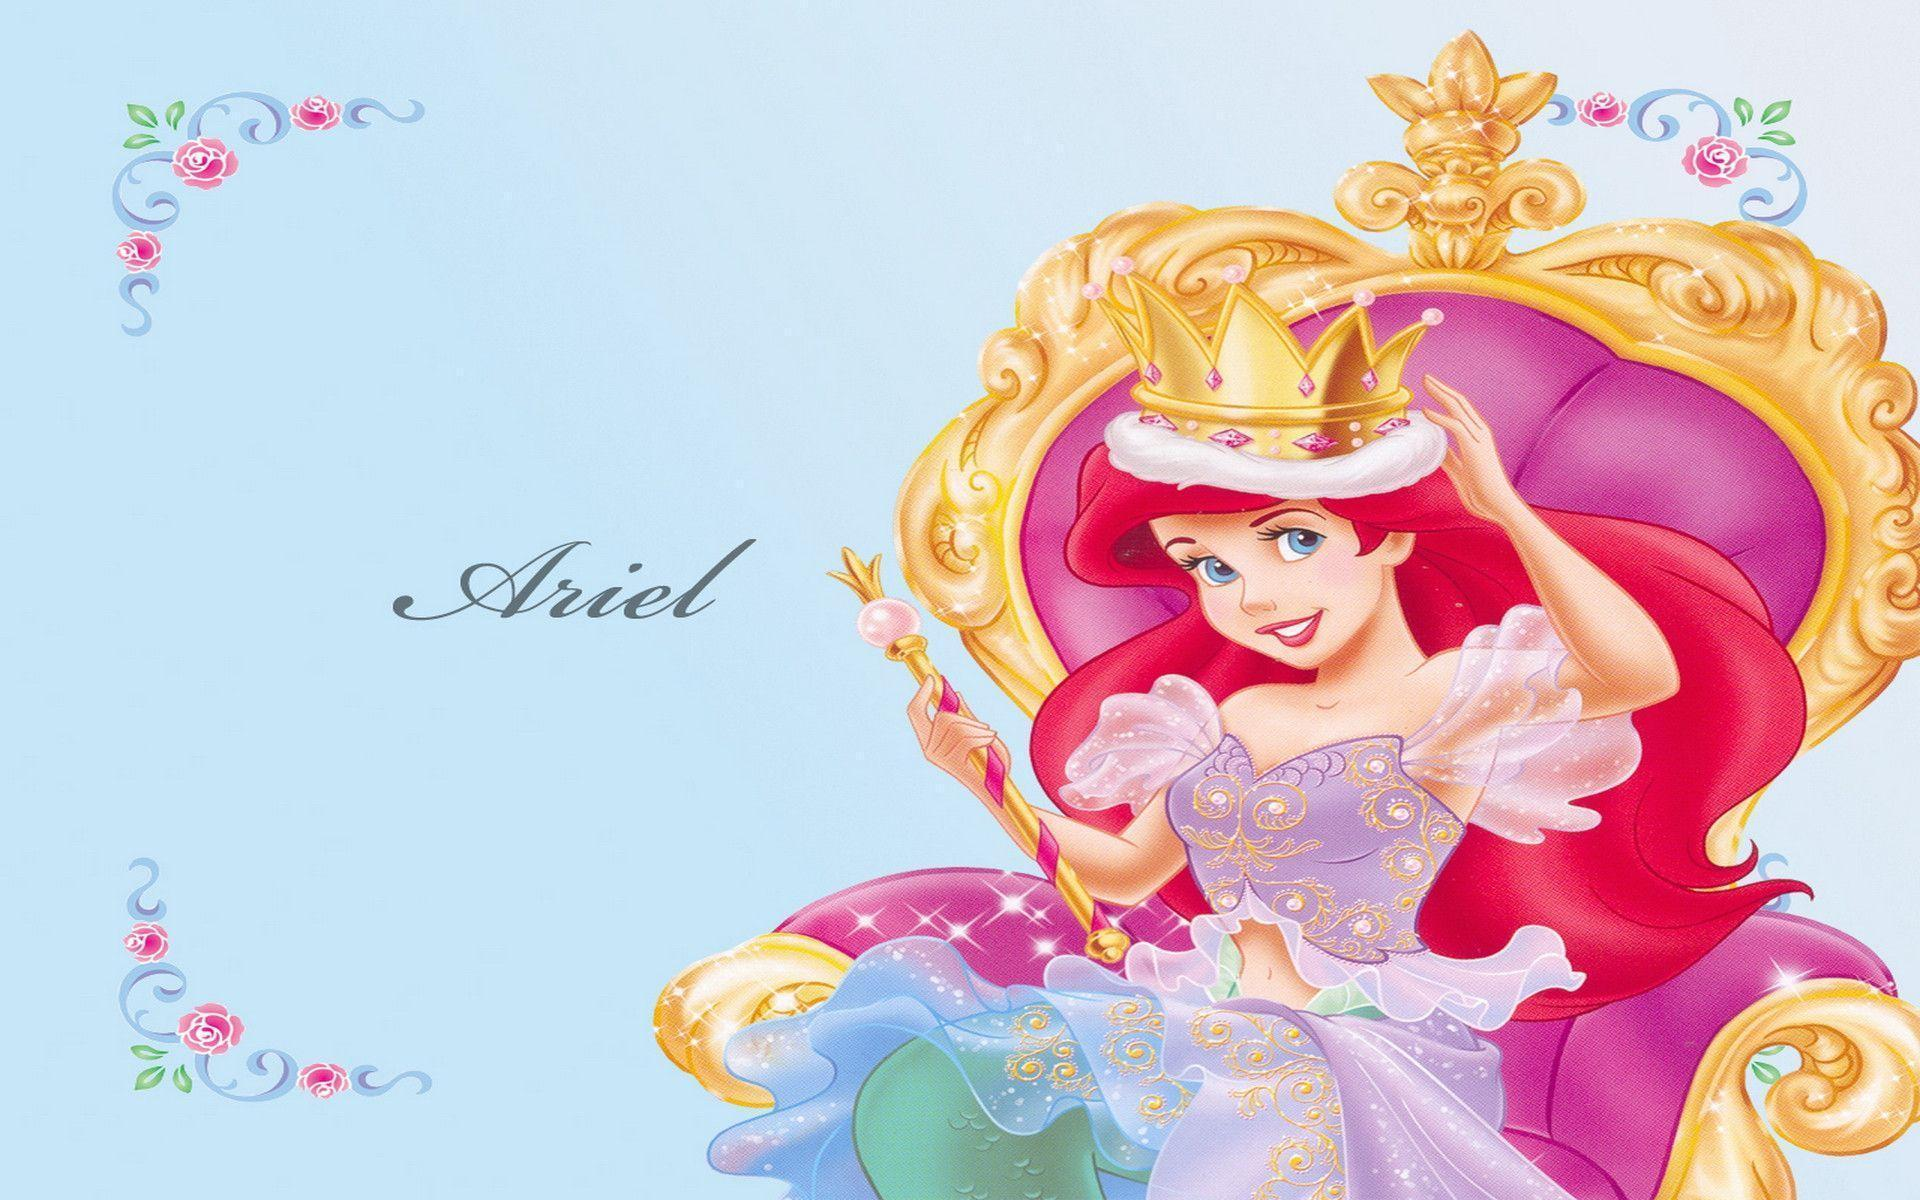 Ariel Images wallpaper hd